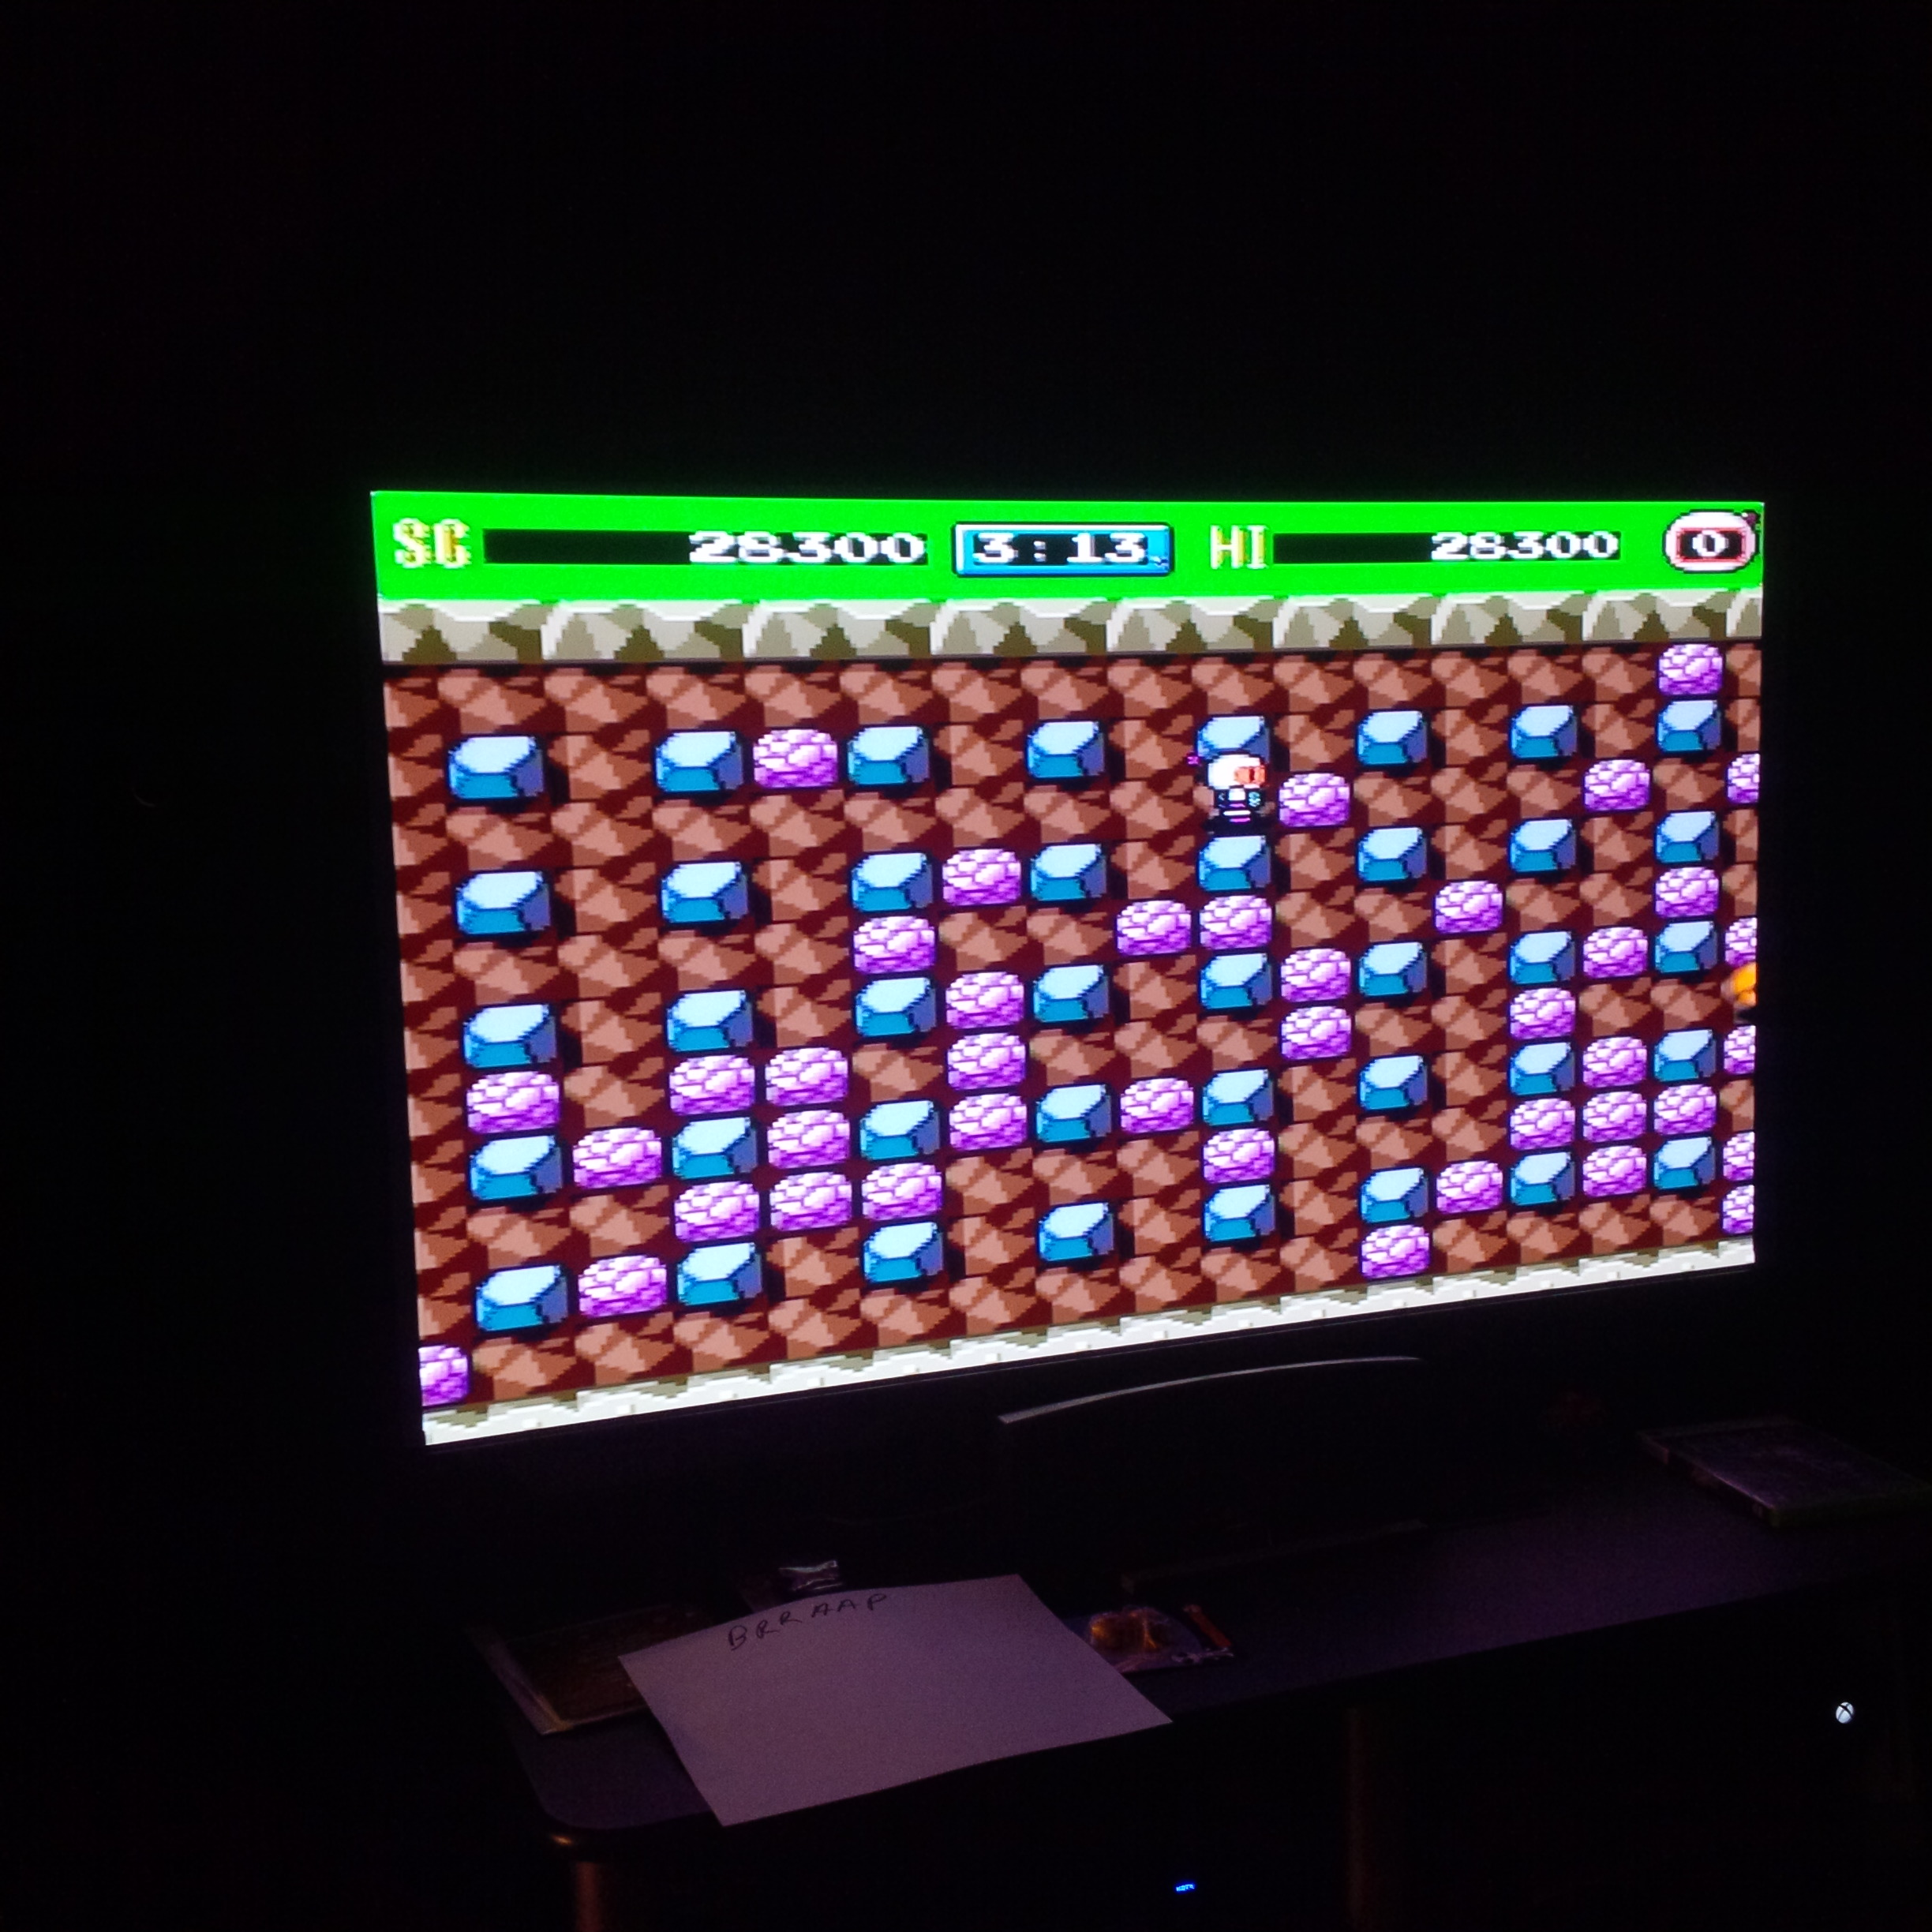 brraap: Bomberman 93 [Normal] (TurboGrafx-16/PC Engine) 28,300 points on 2014-10-18 19:32:16